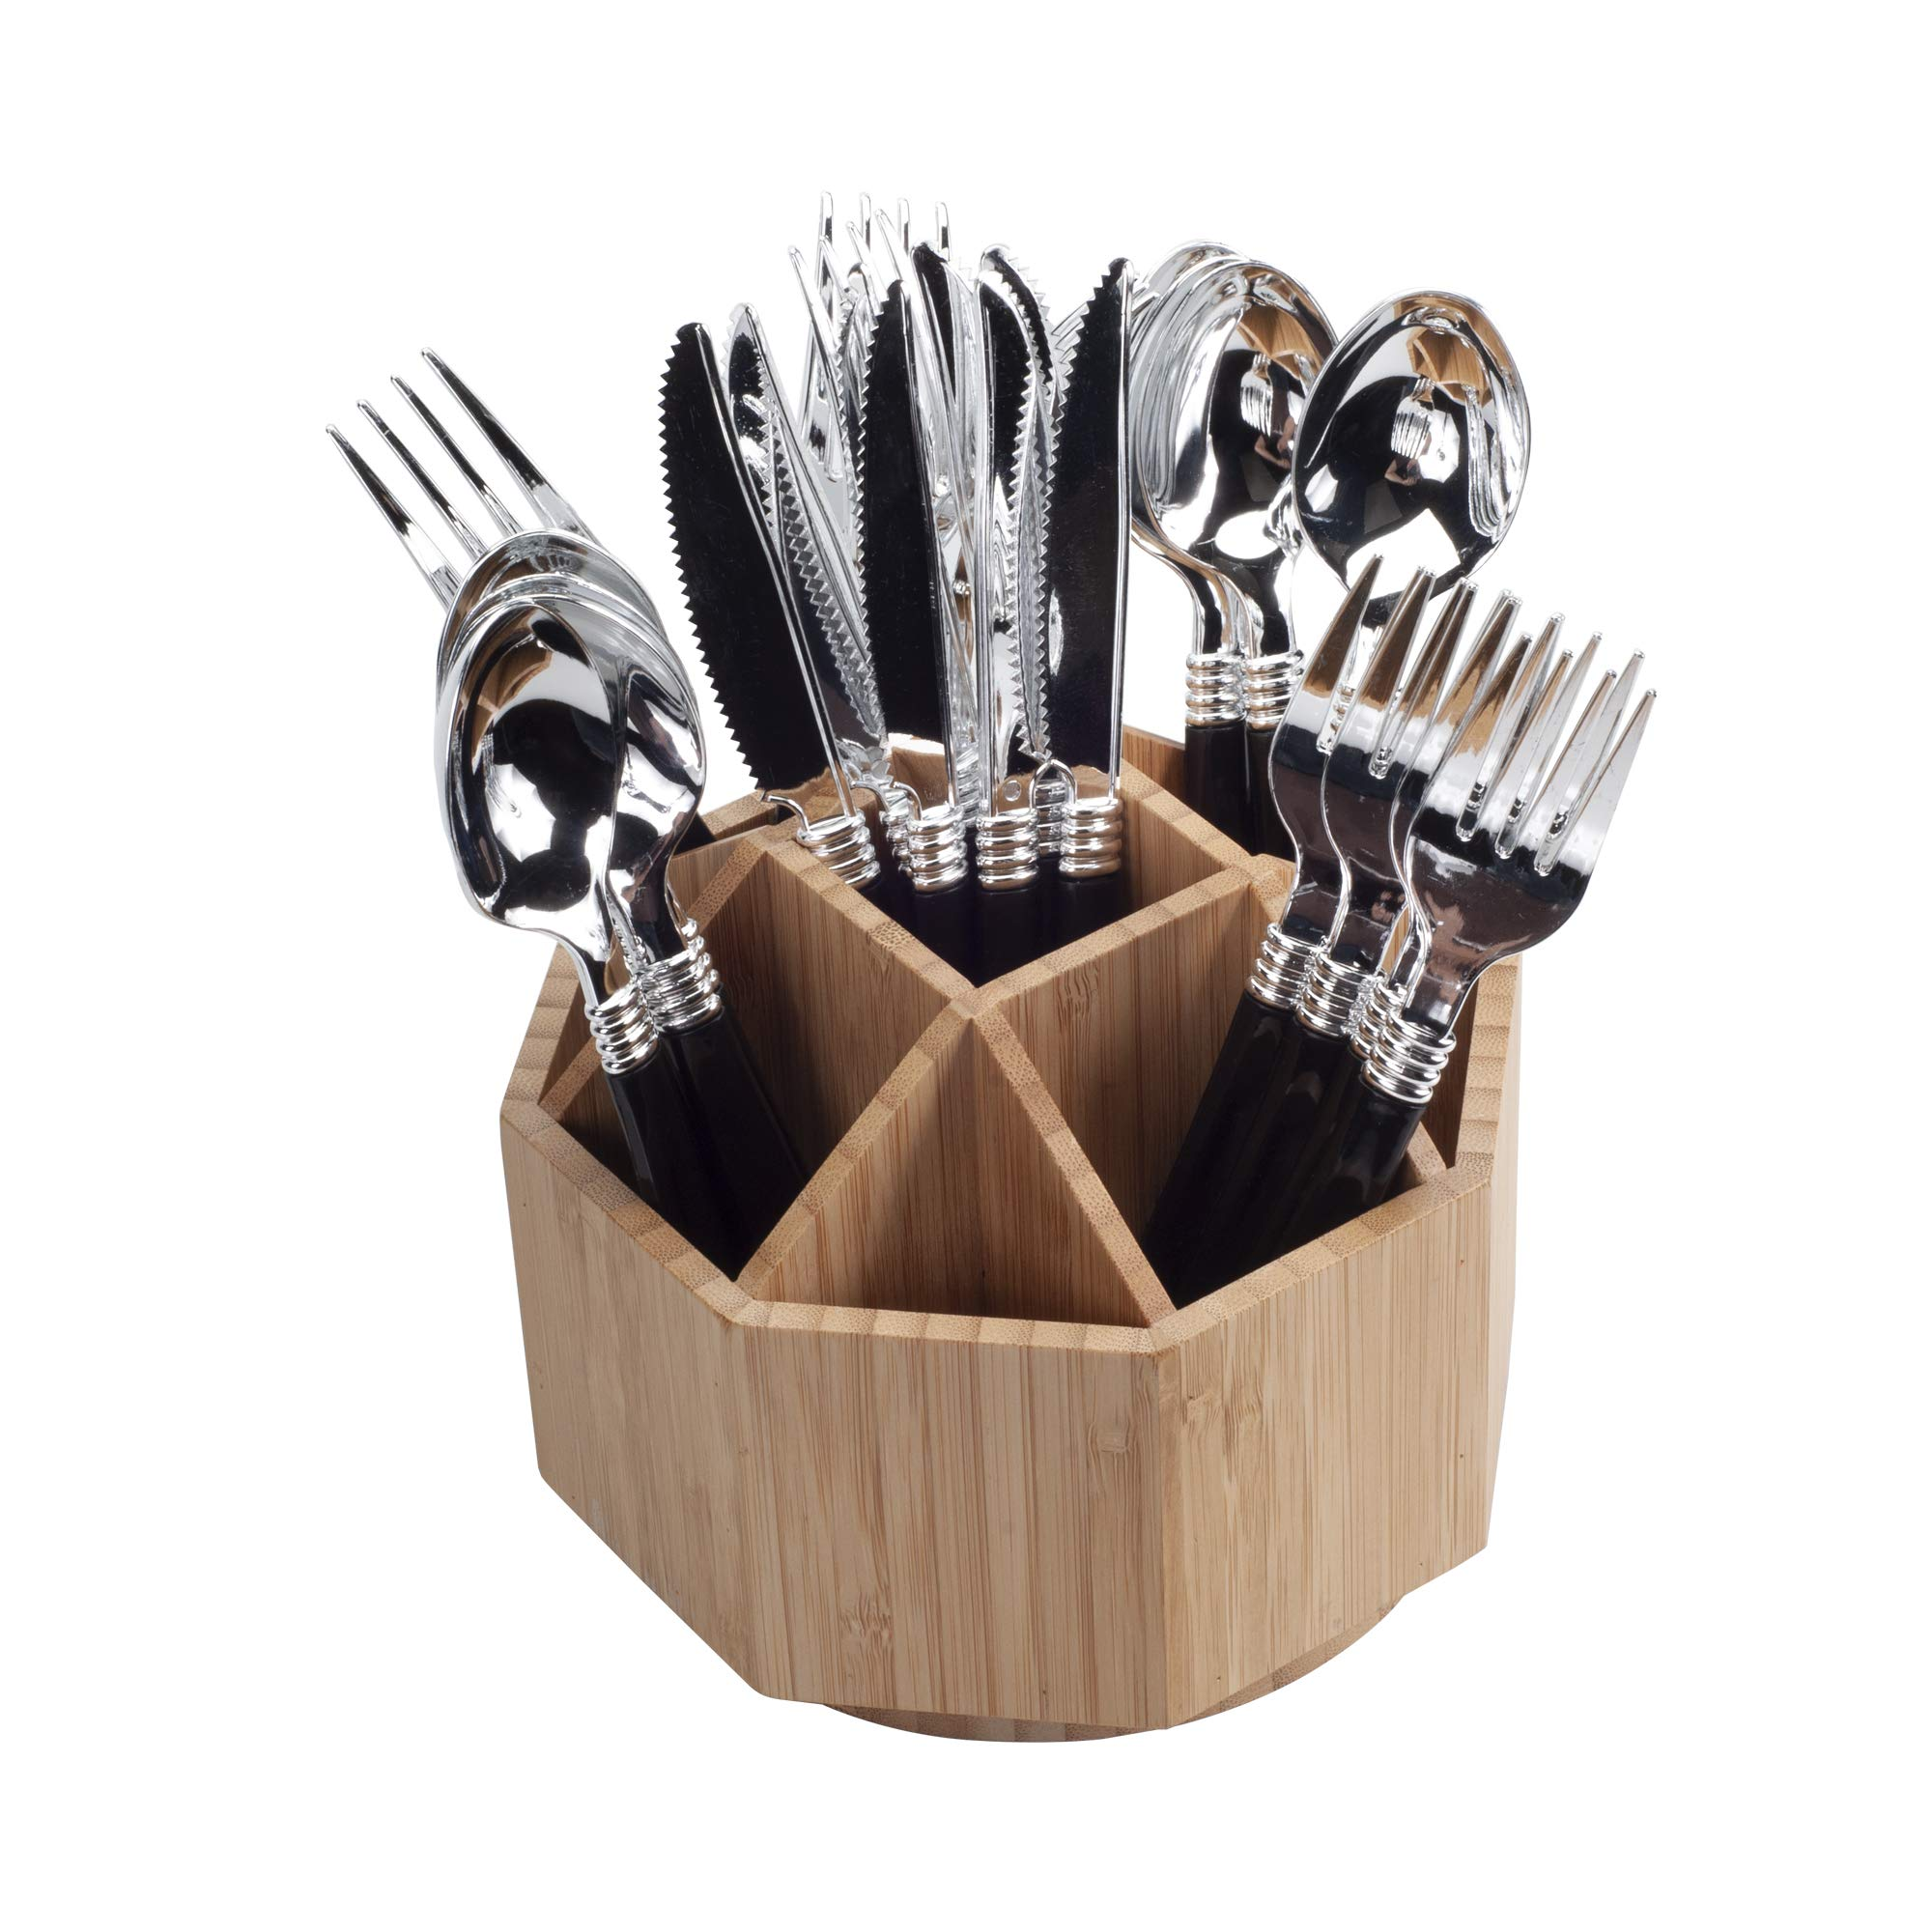 Bamboo Rotating Utensil Holder & Kitchen Organizer, Multiple Compartments, 9 Sections, store Forks, Serving Spoons, Knives, and other cooking tools